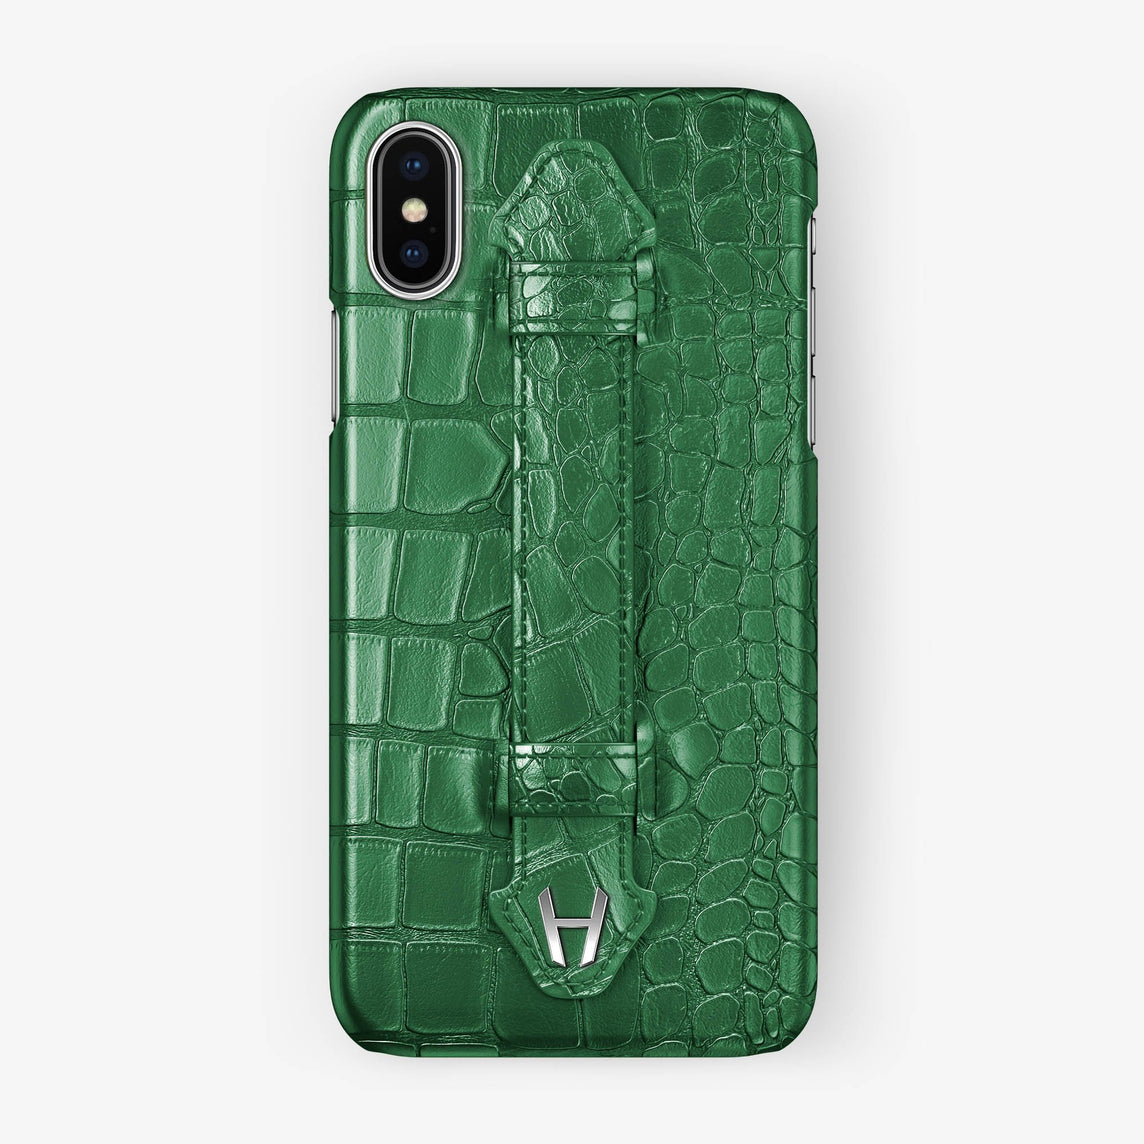 Green Alligator iPhone Finger Case for iPhone X finishing stainless steel - Hadoro Luxury Cases